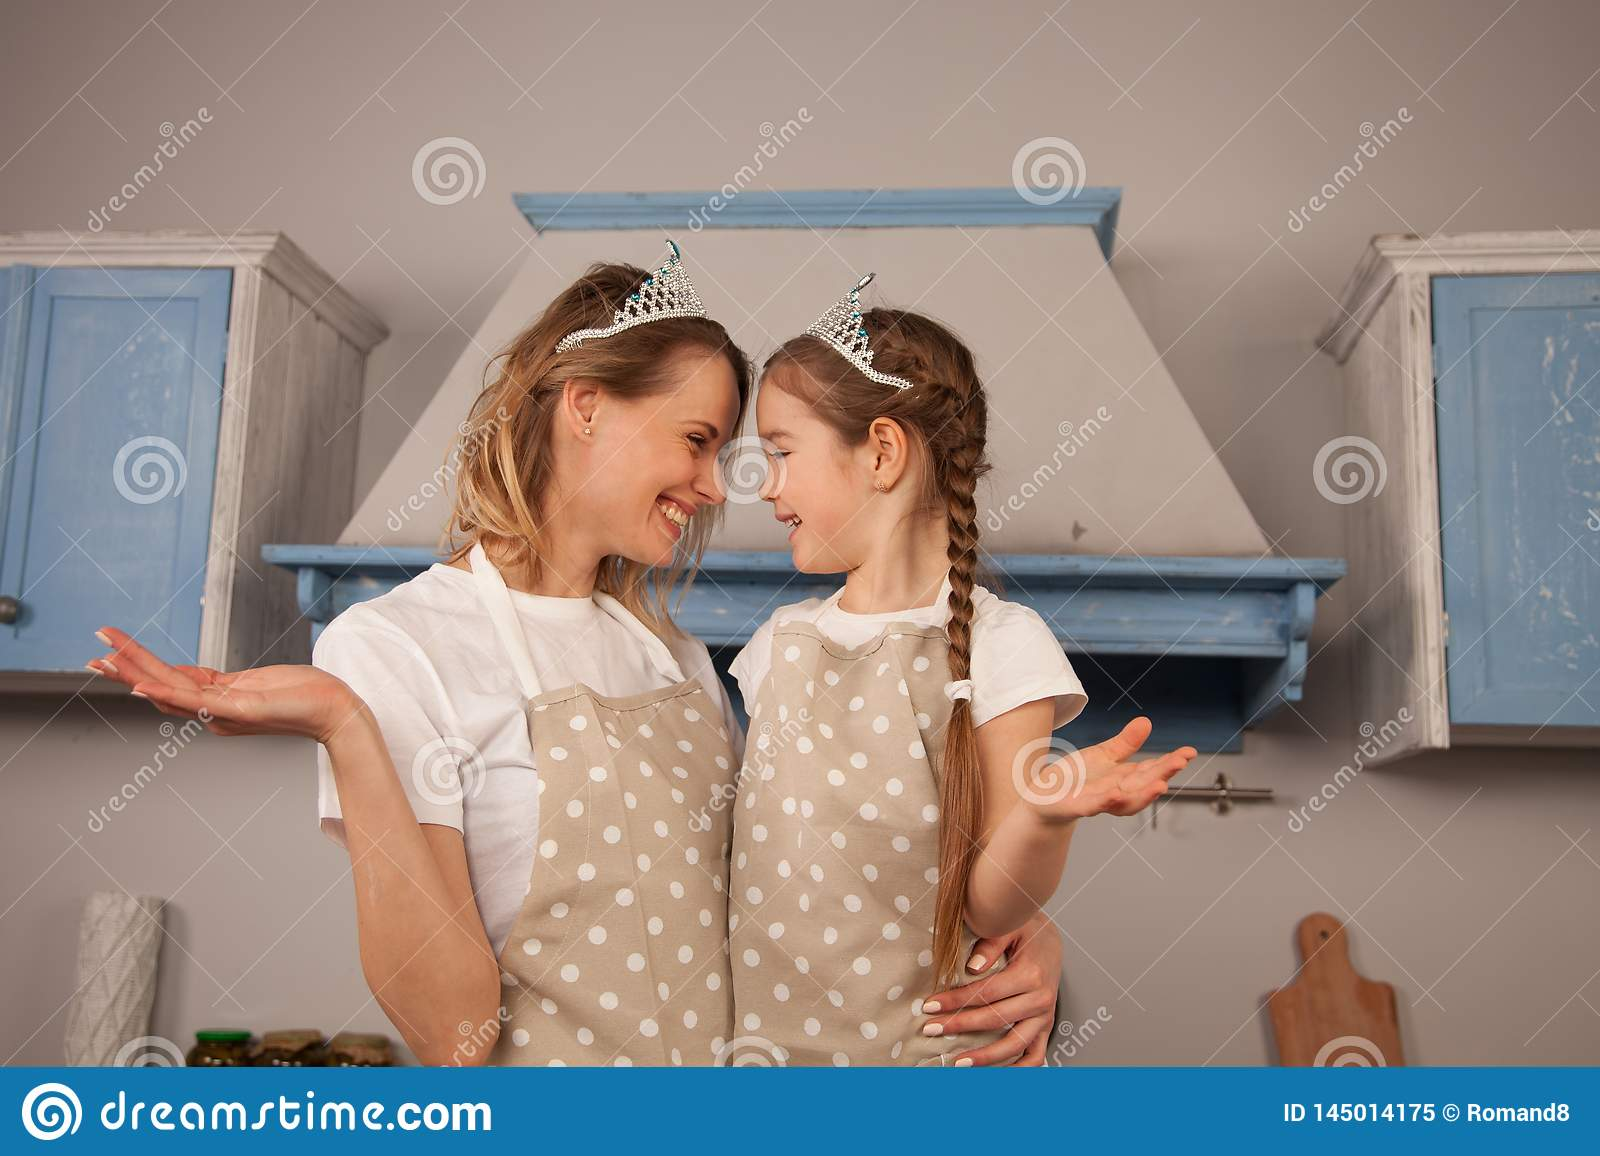 Happy loving family in the kitchen. Mother and child daughter girl are having fun wearing crowns, looking at each other